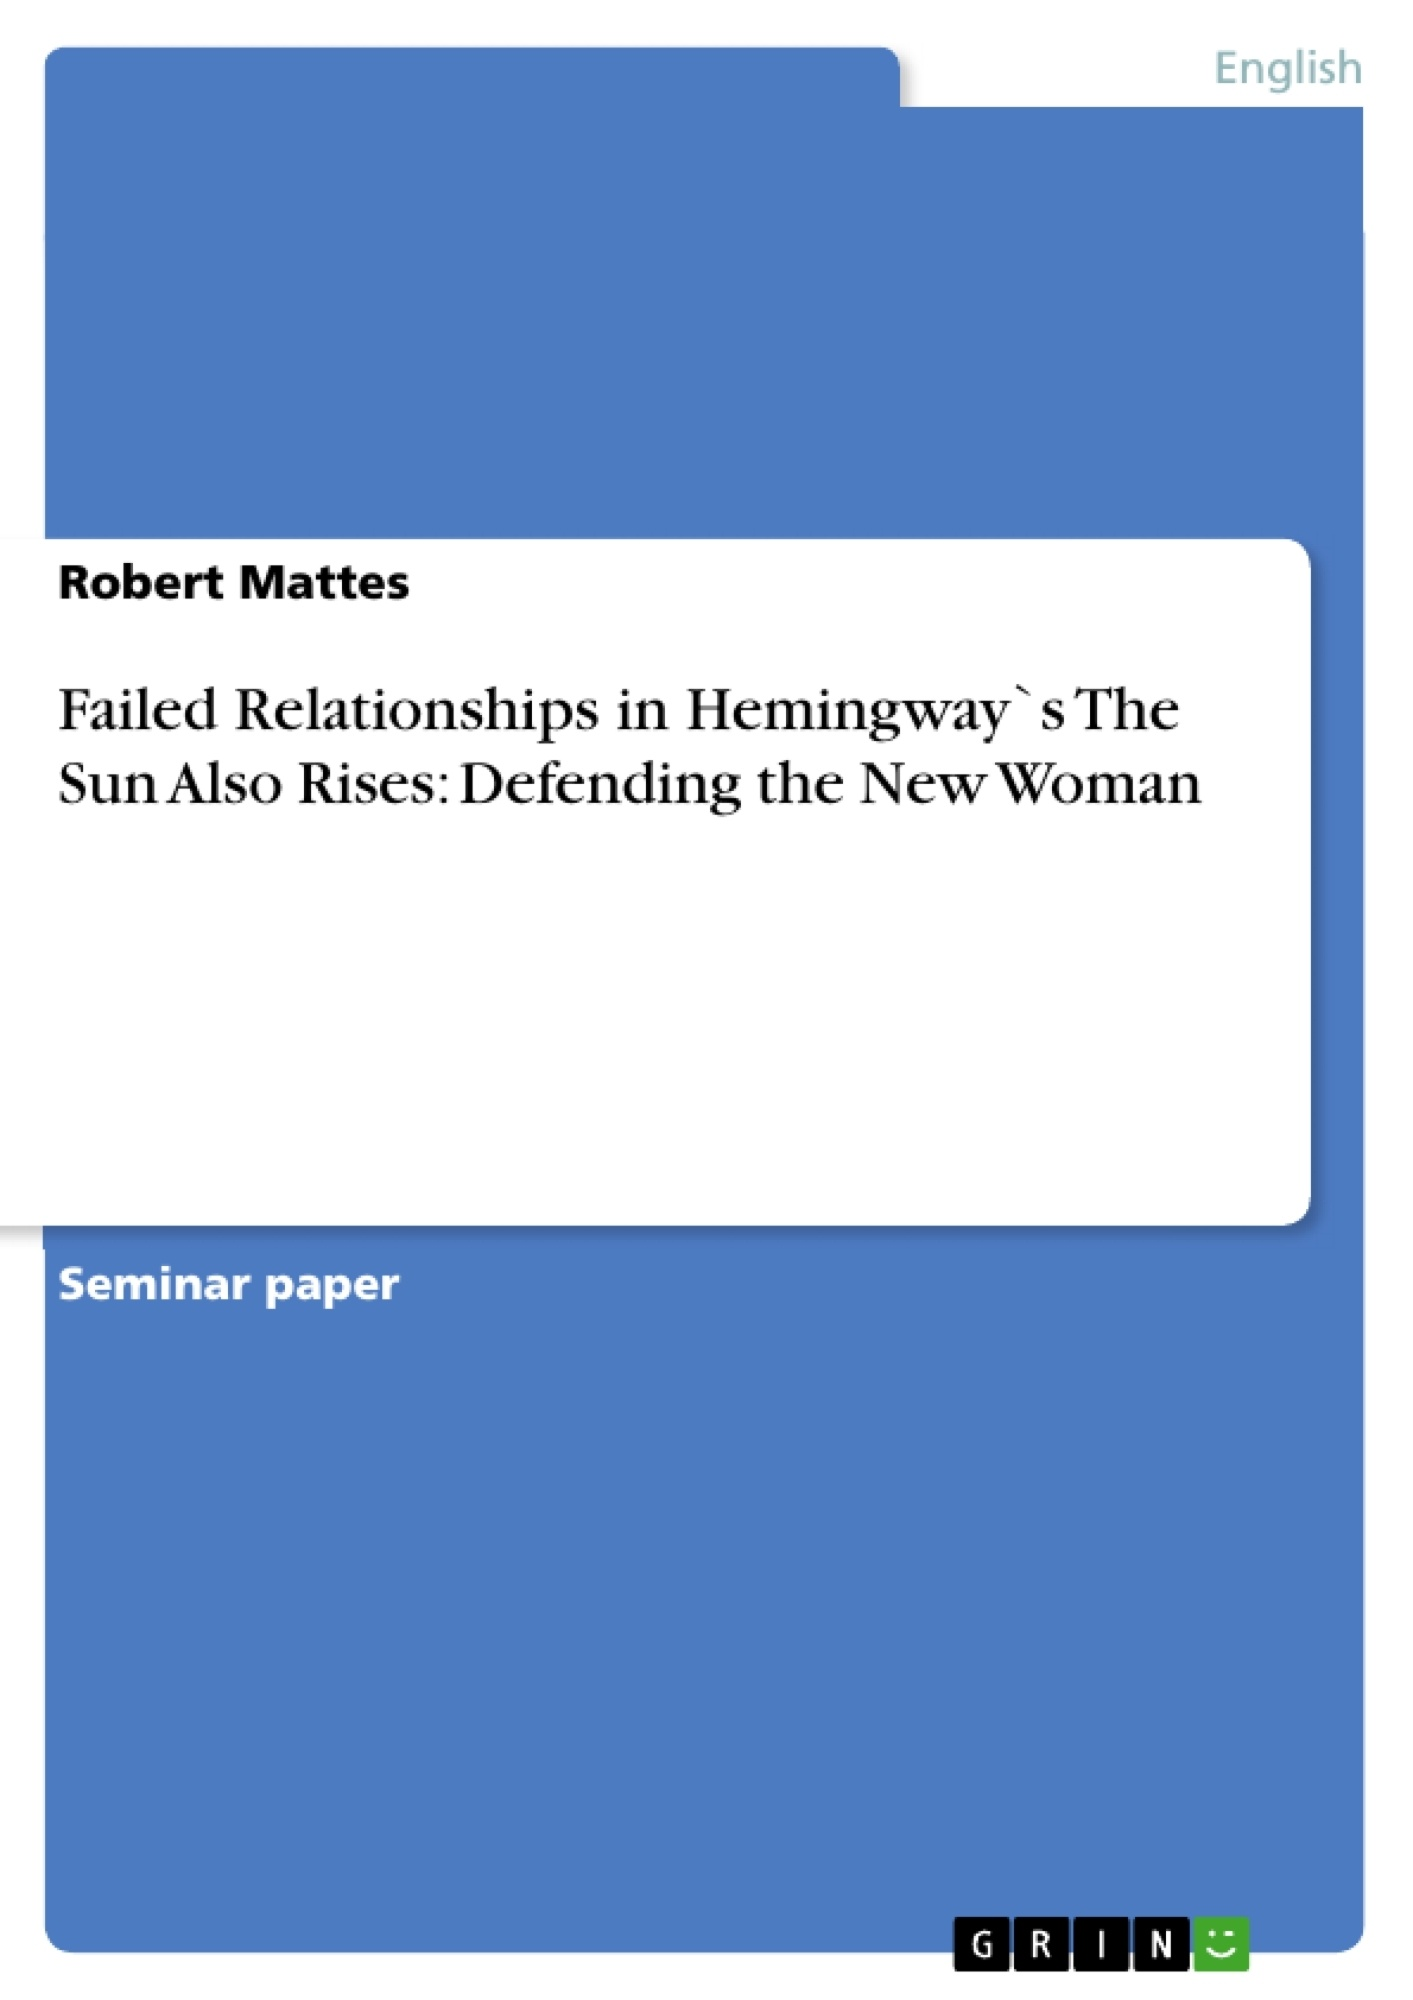 Title: Failed Relationships in Hemingway`s The Sun Also Rises: Defending the New Woman